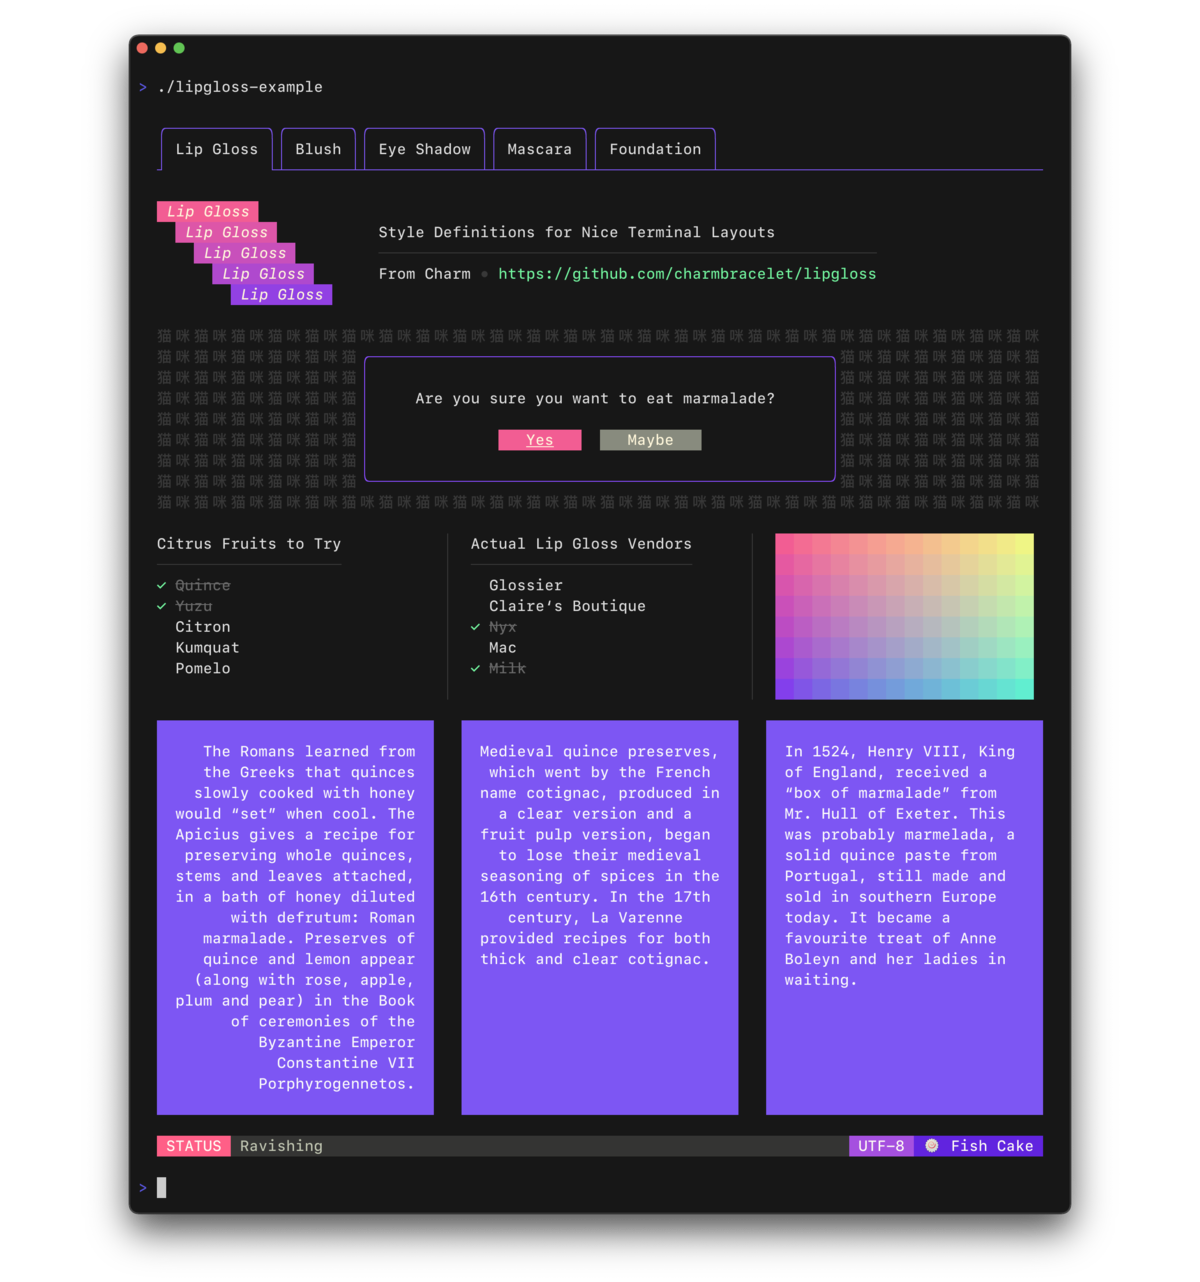 Lip Gloss – style definitions for nice terminal layouts